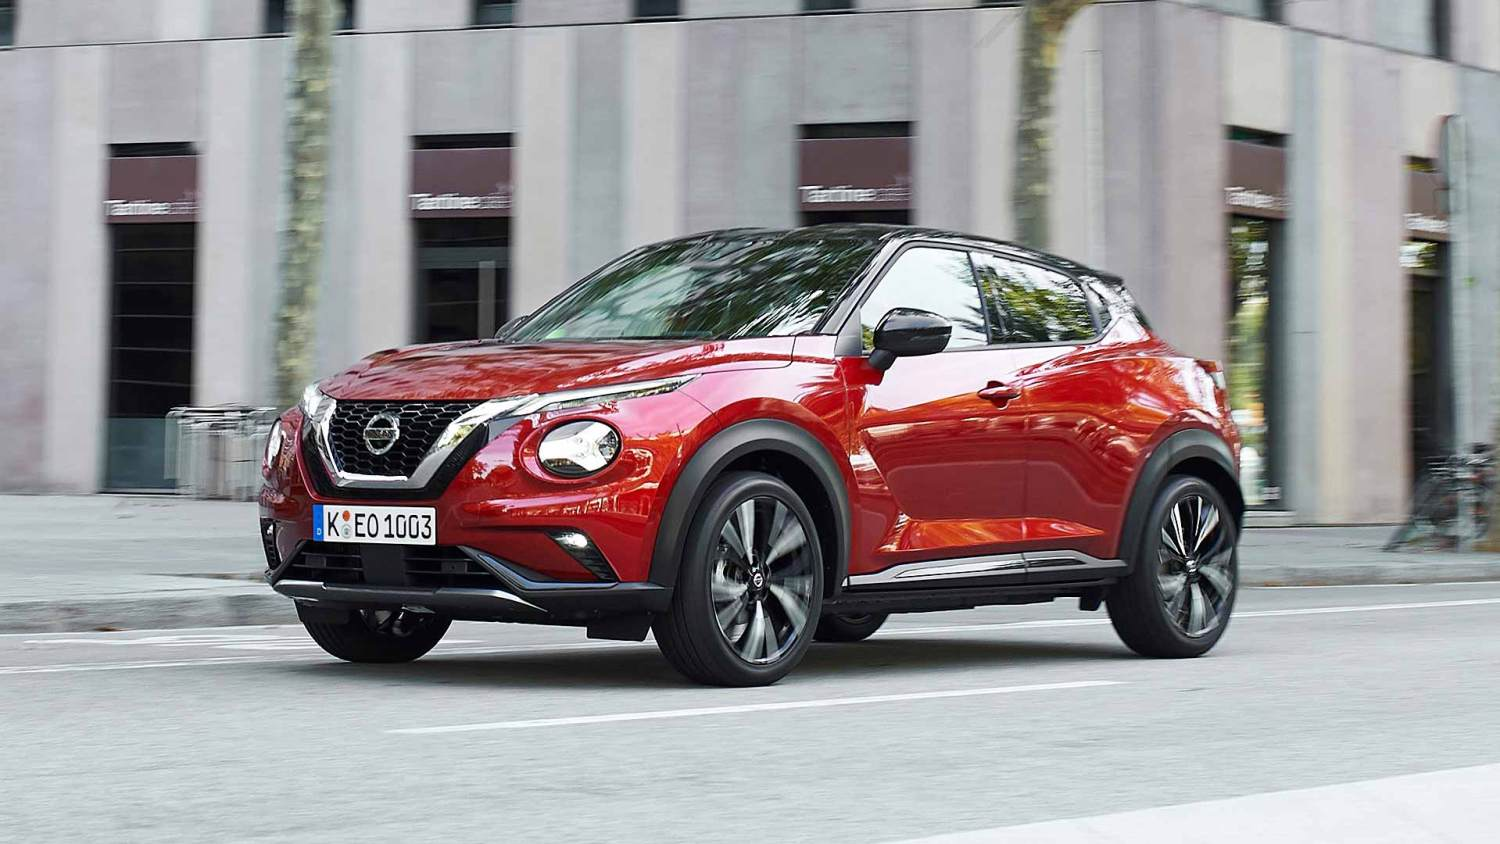 2020 Nissan Juke Review Juke Boxes Clever Motoring Research